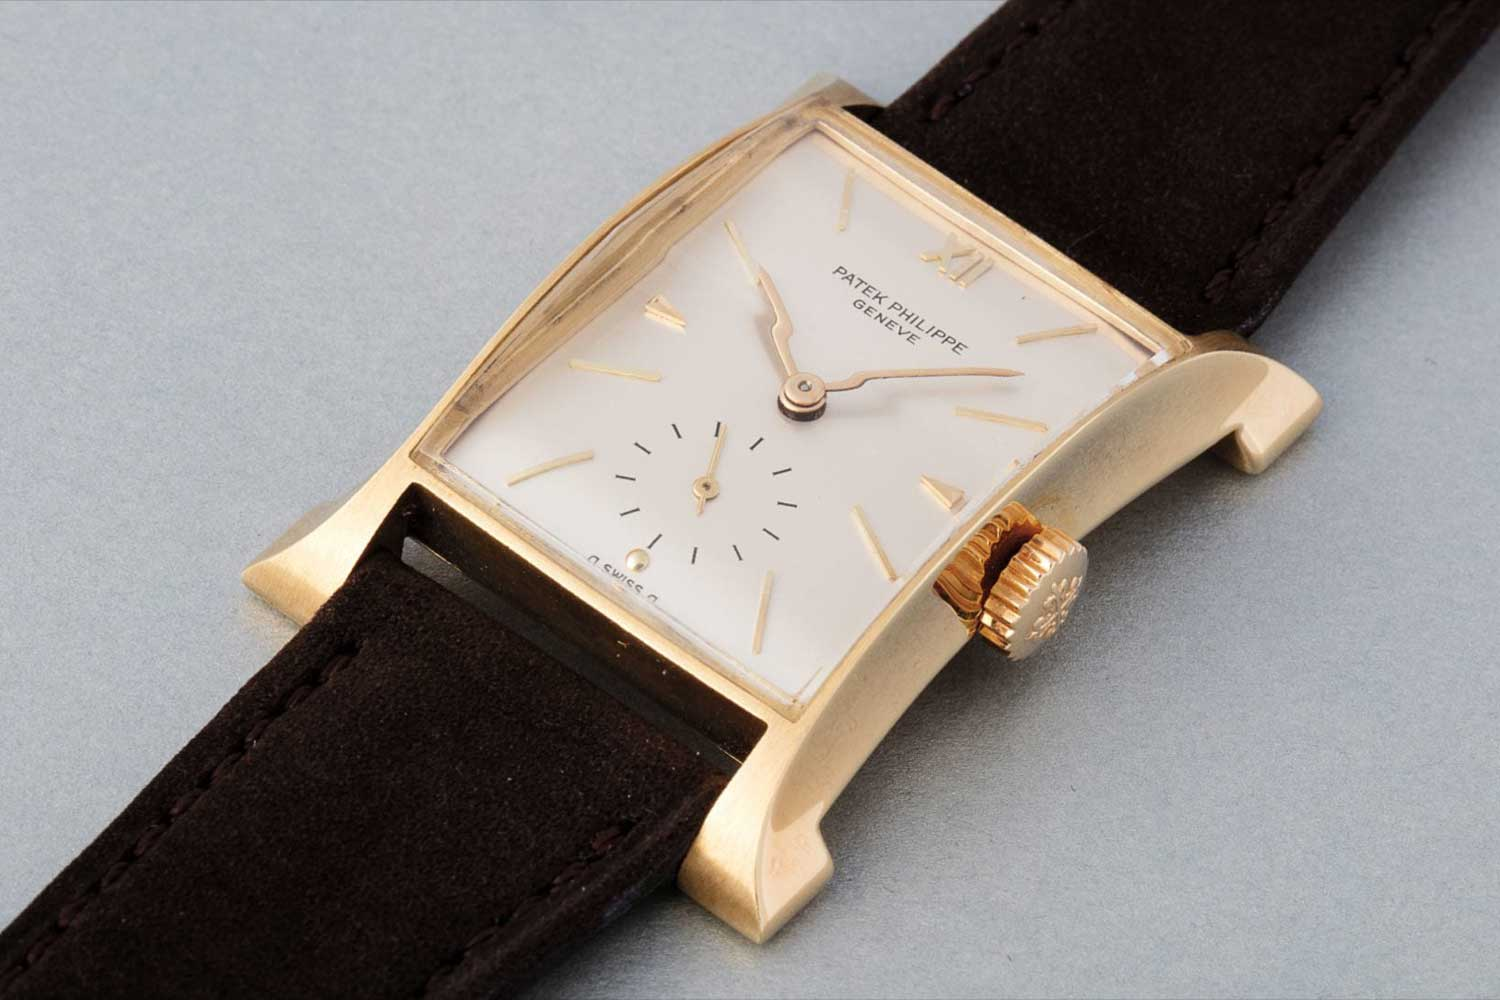 """Patek Philippe made around 200 pieces of the ref. 2441 between 1948 and 1955 200. Often referred to as the """"Eiffel Tower"""" for its distinct flared design,it inspired the design for the 'Pagoda'wristwatch in 1997."""